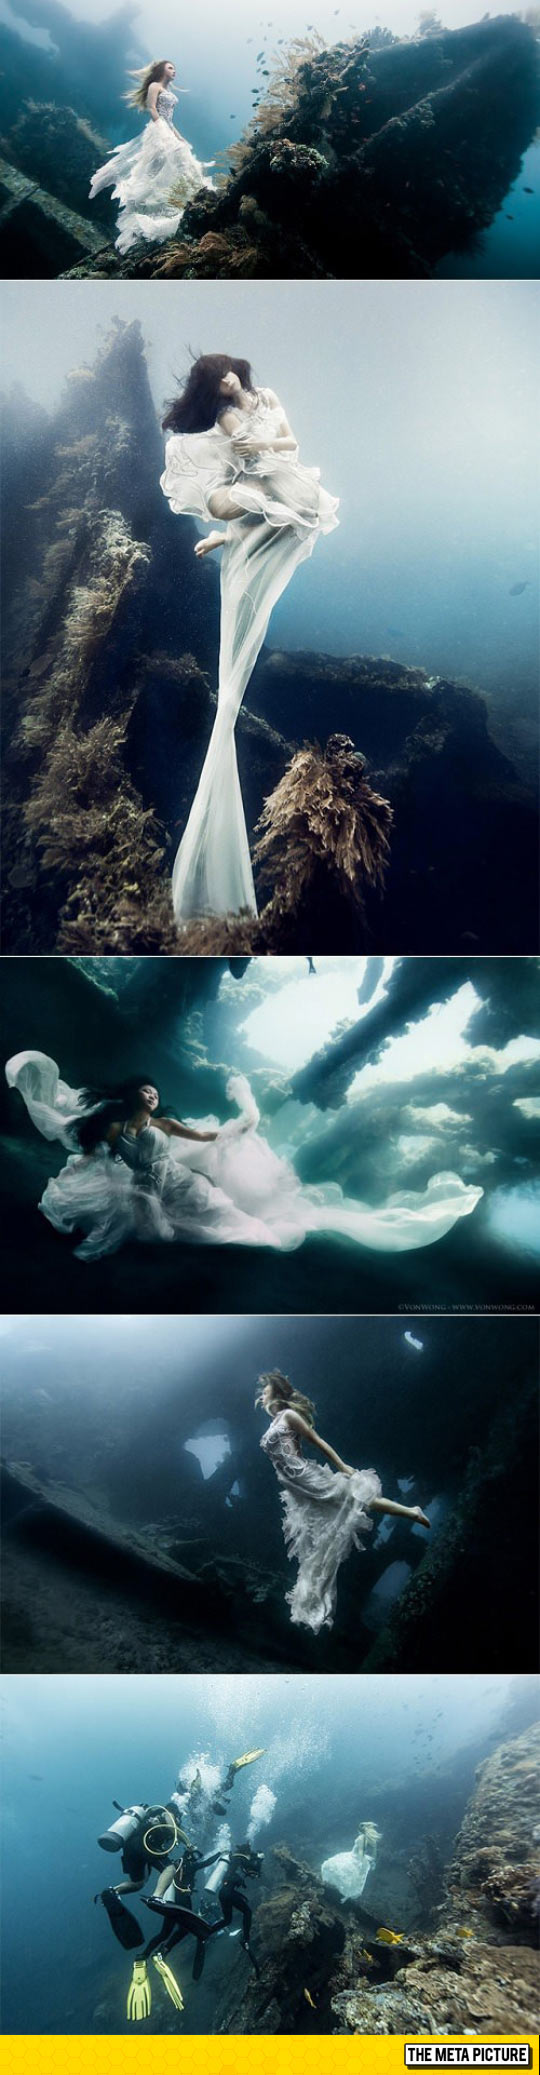 Underwater Photoshoot, Bali